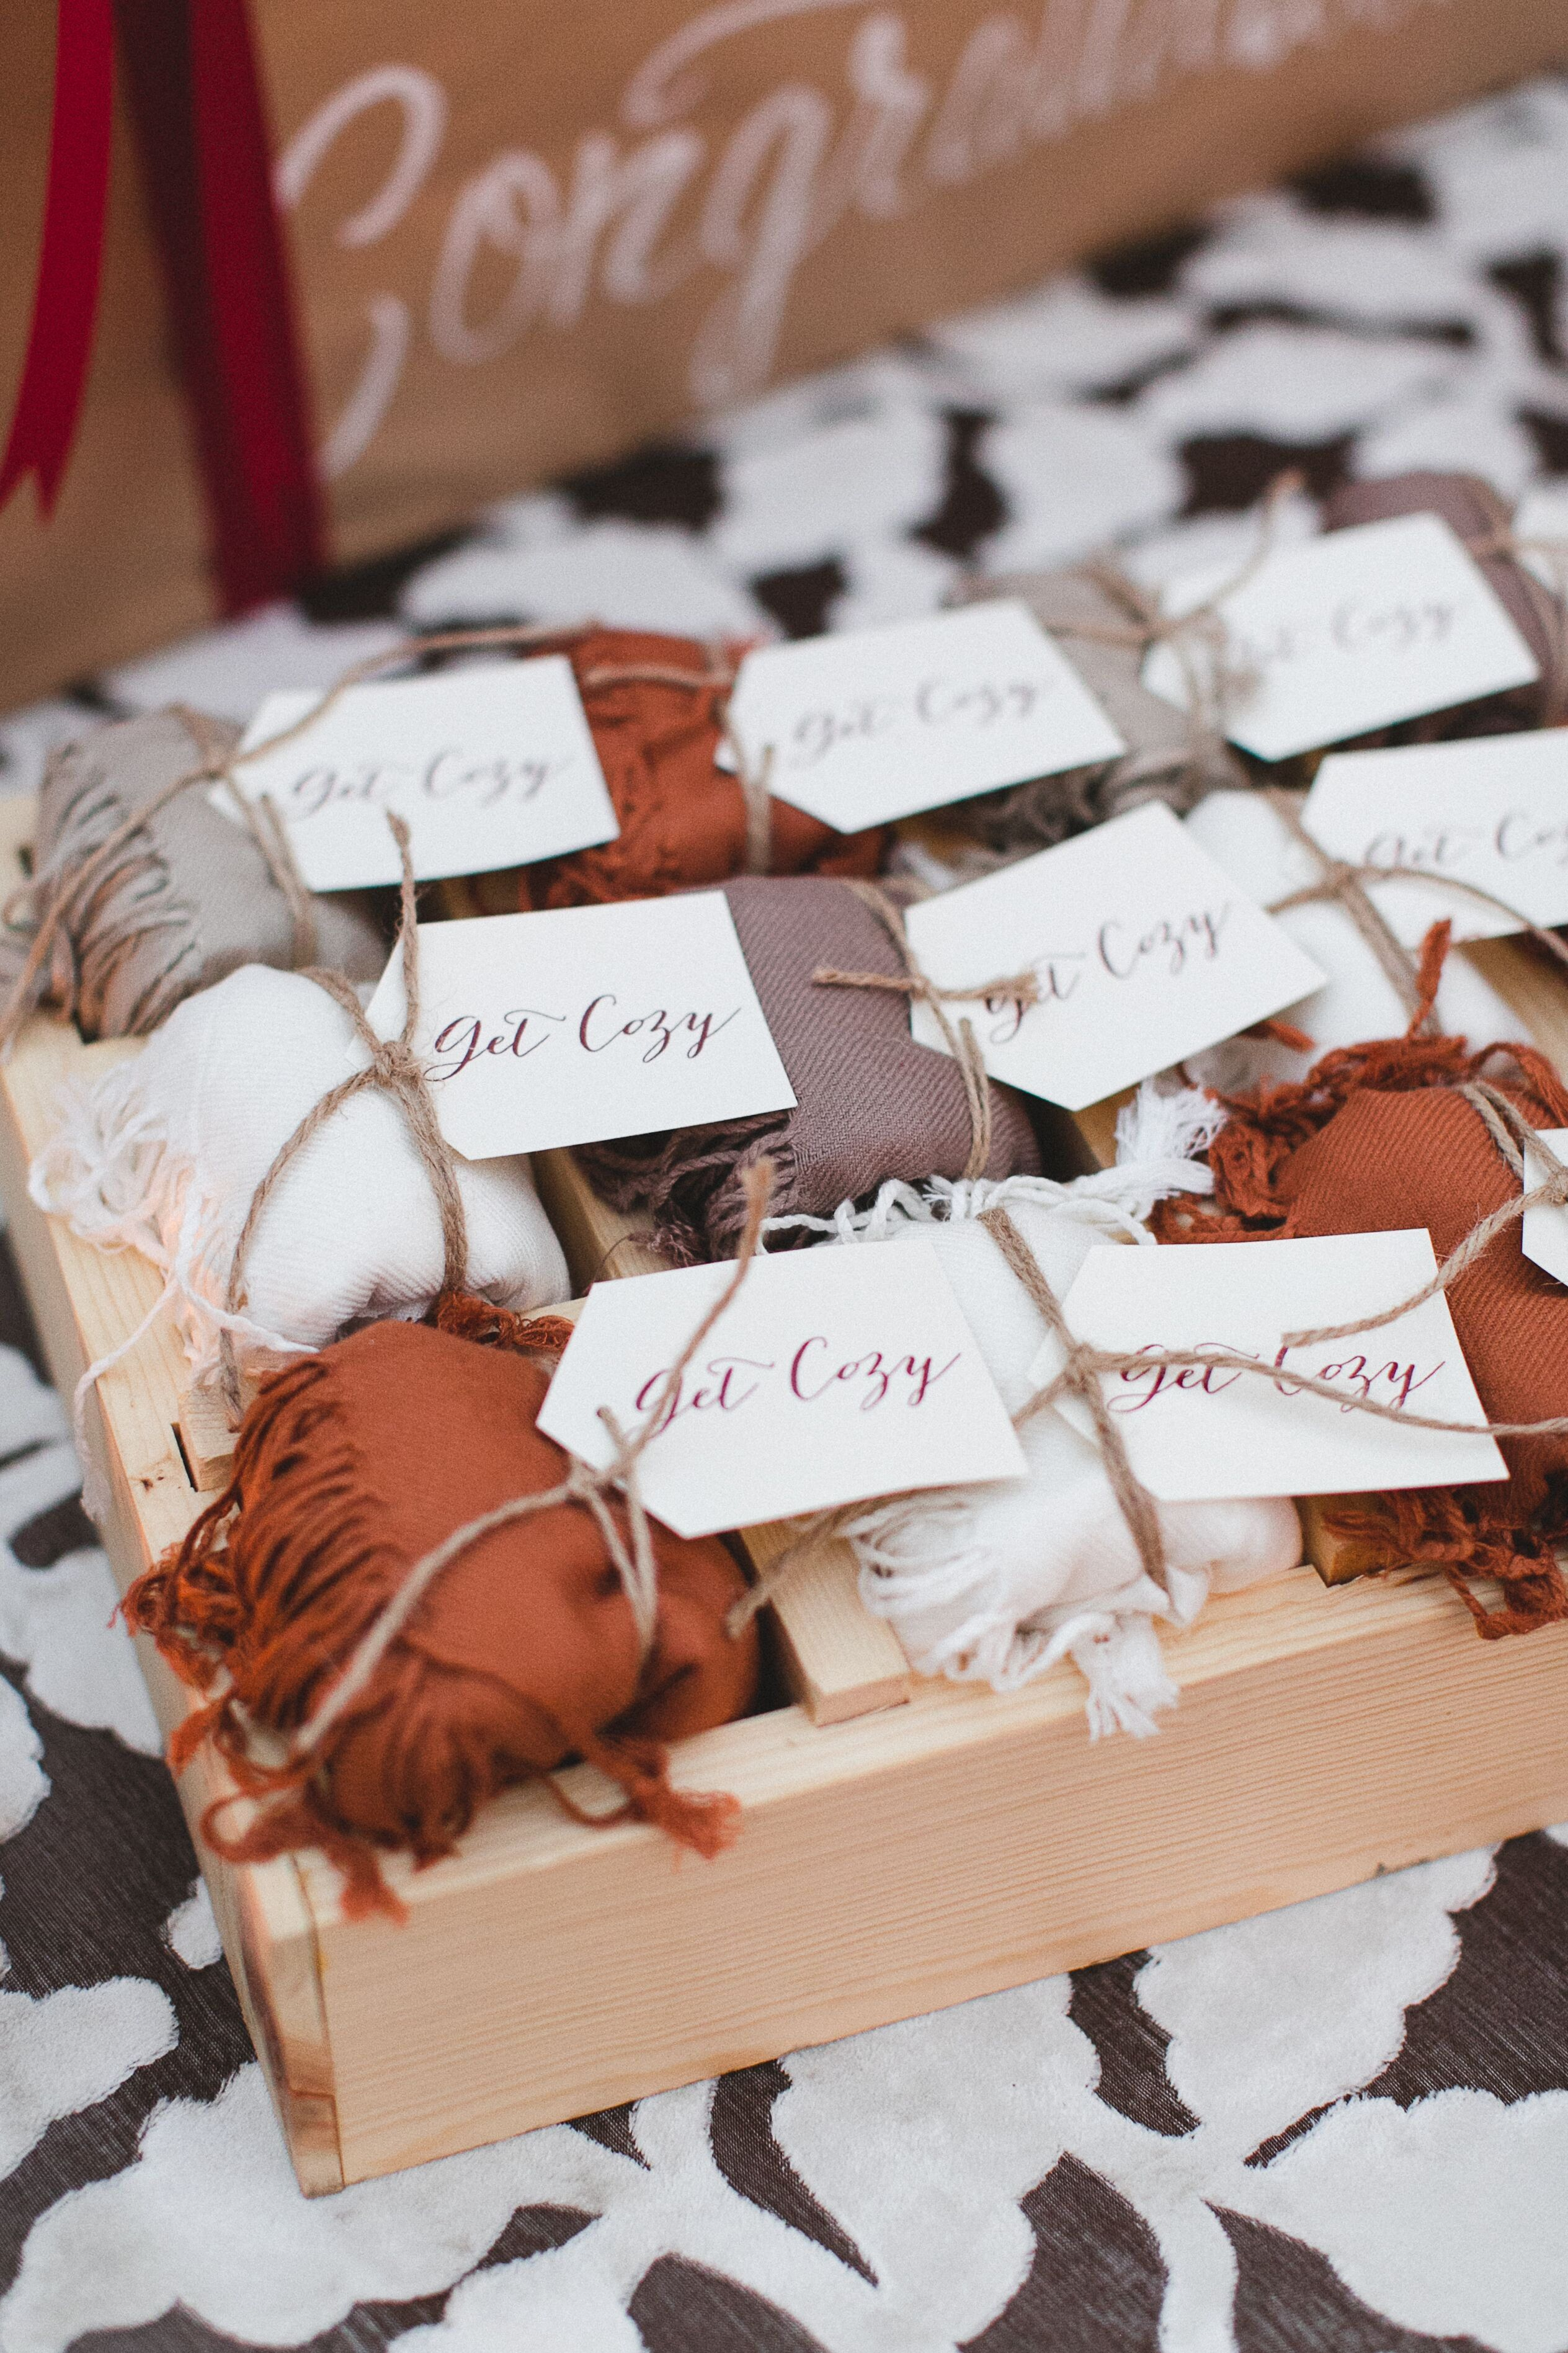 """""""Get Cozy"""" Scarf Assortment for Guests in 2020 Wedding"""